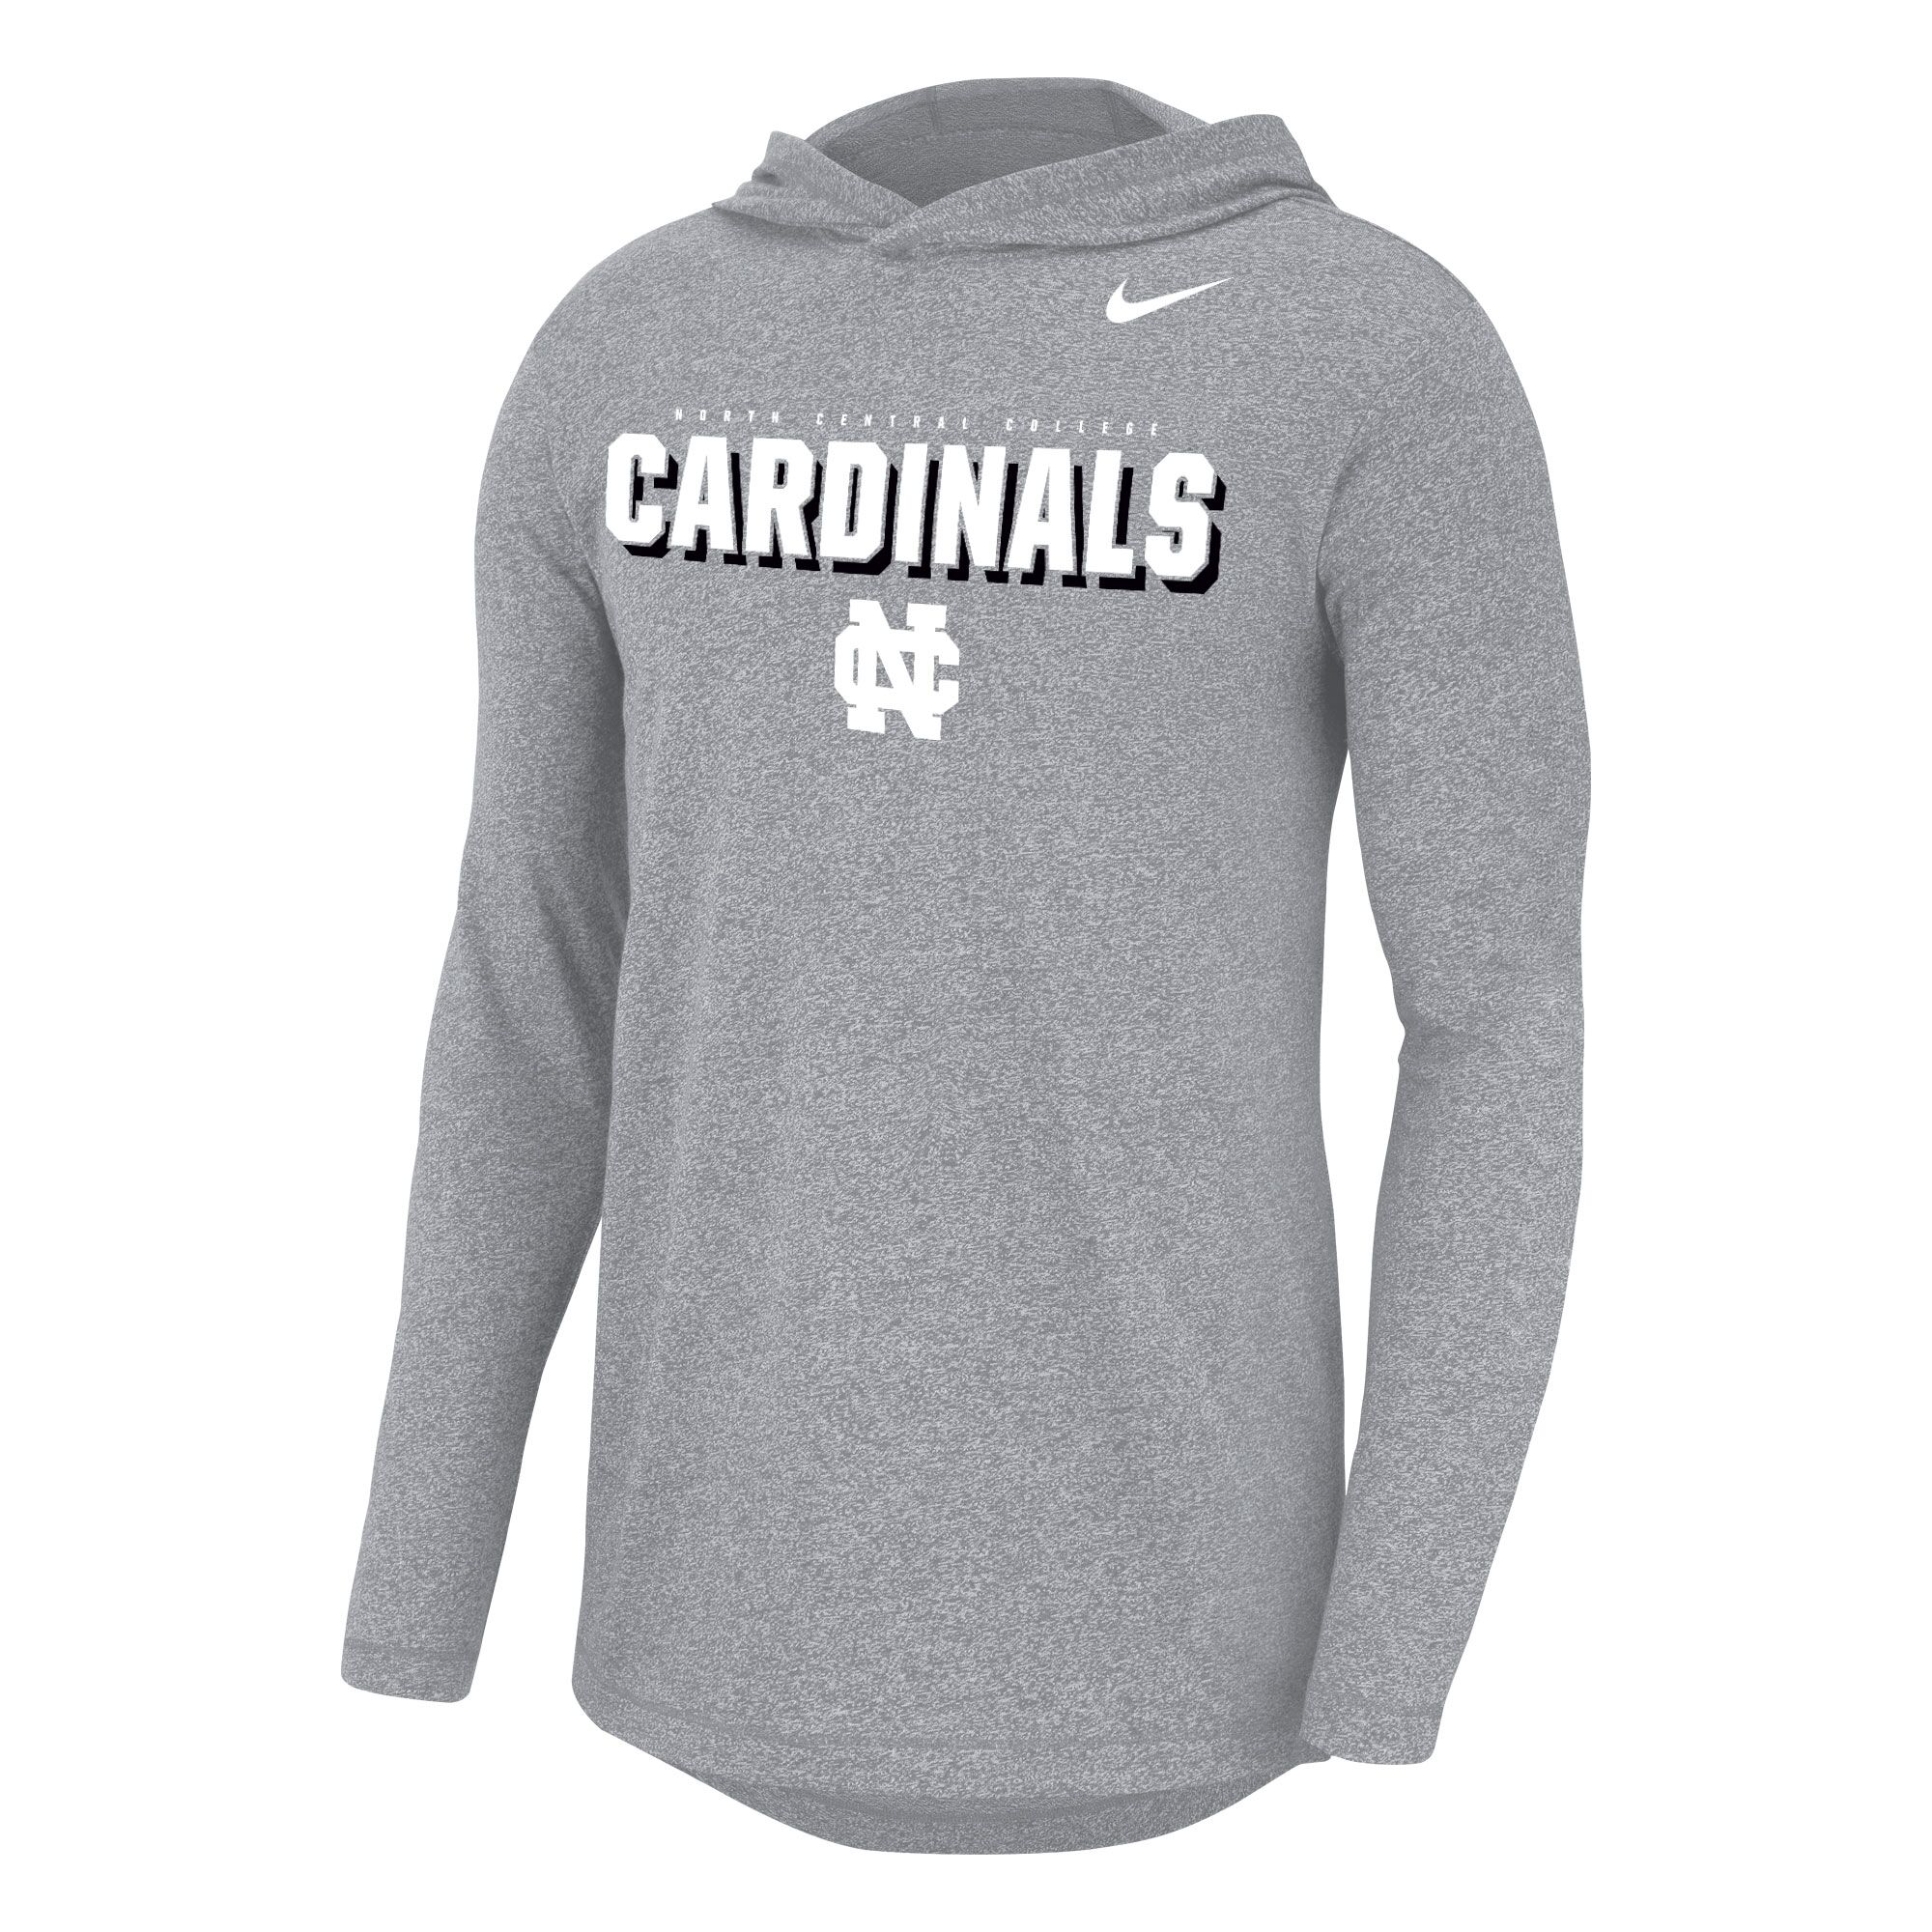 Image for the Marled Hoody by Nike 2019 Design product